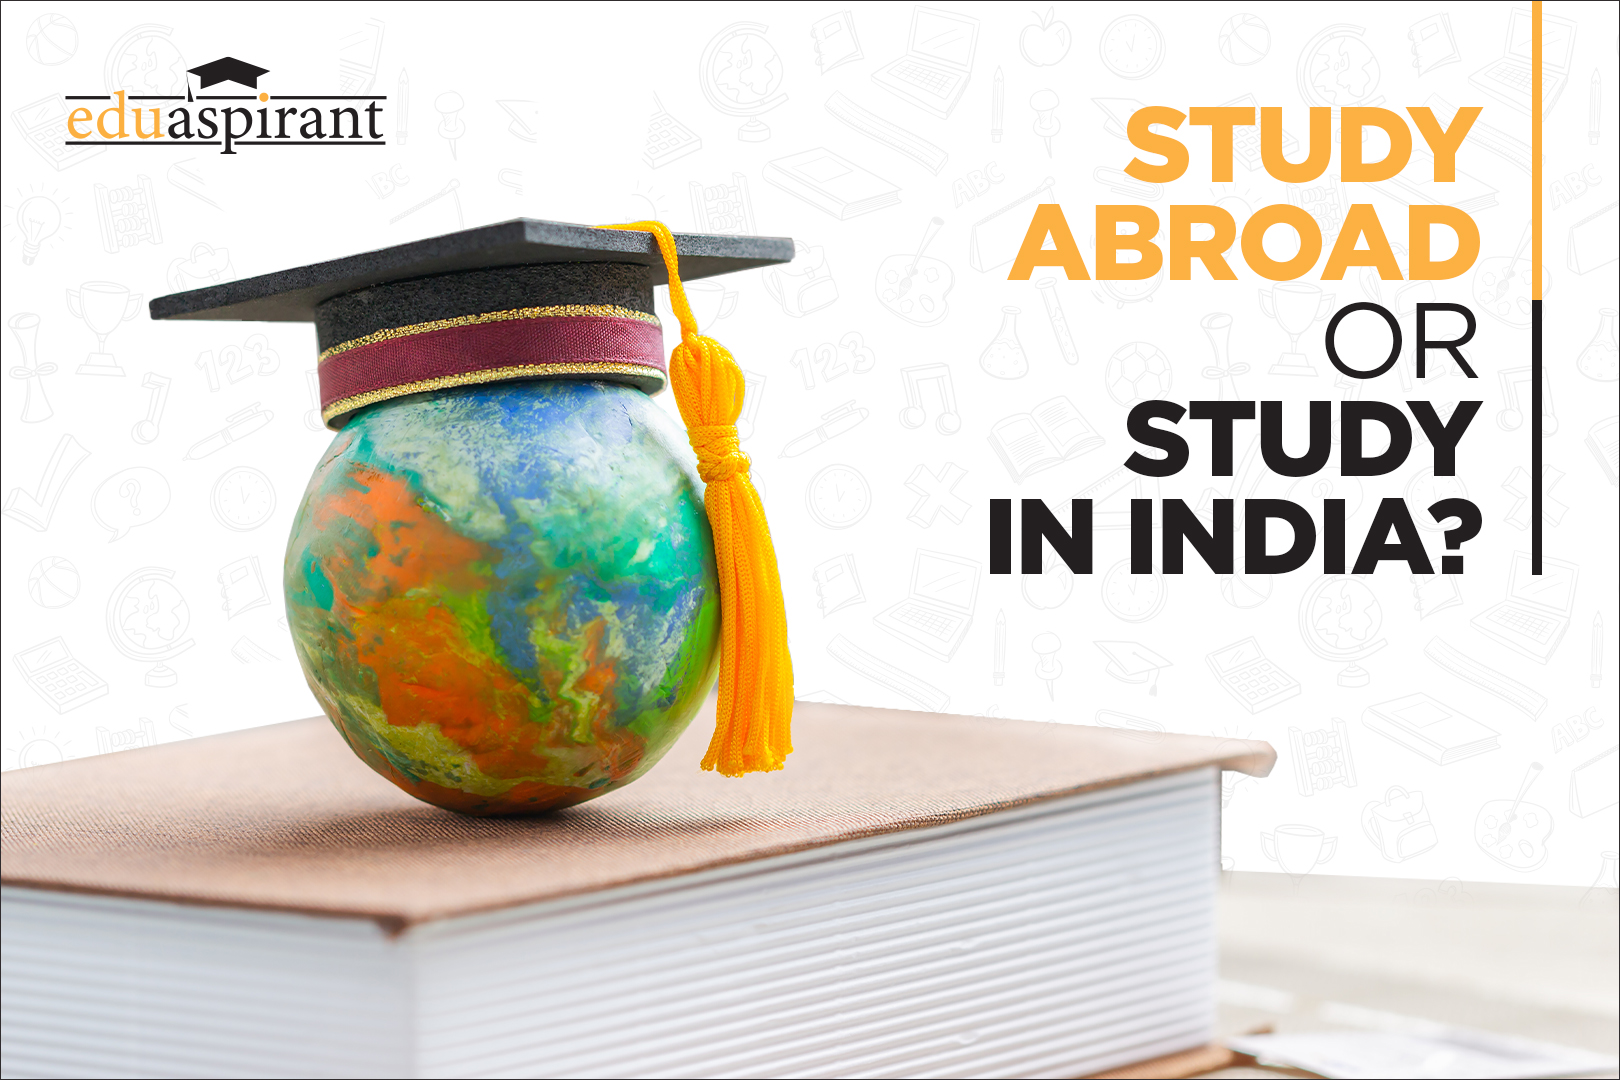 Studying Abroad vs Studying in India – What are the differences?